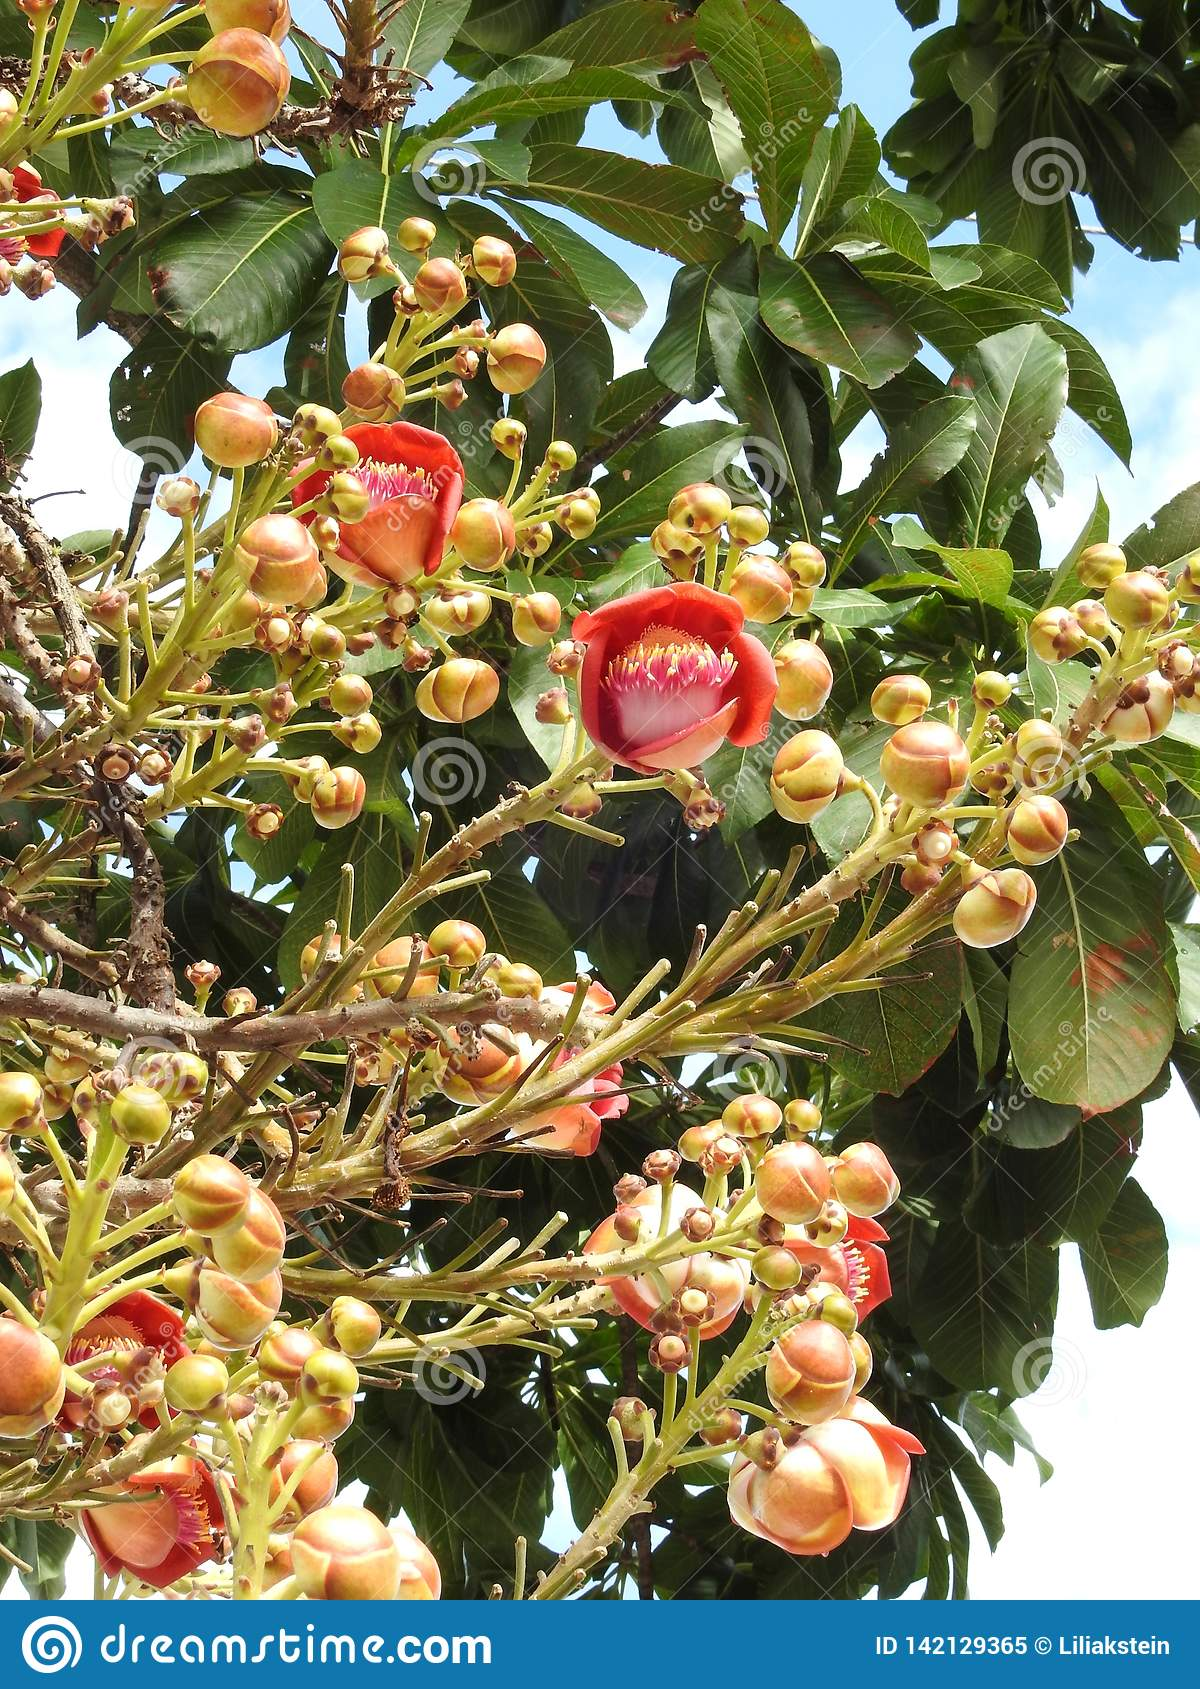 Cannonball tree flower couroupita guianensis with many buds and green leaves